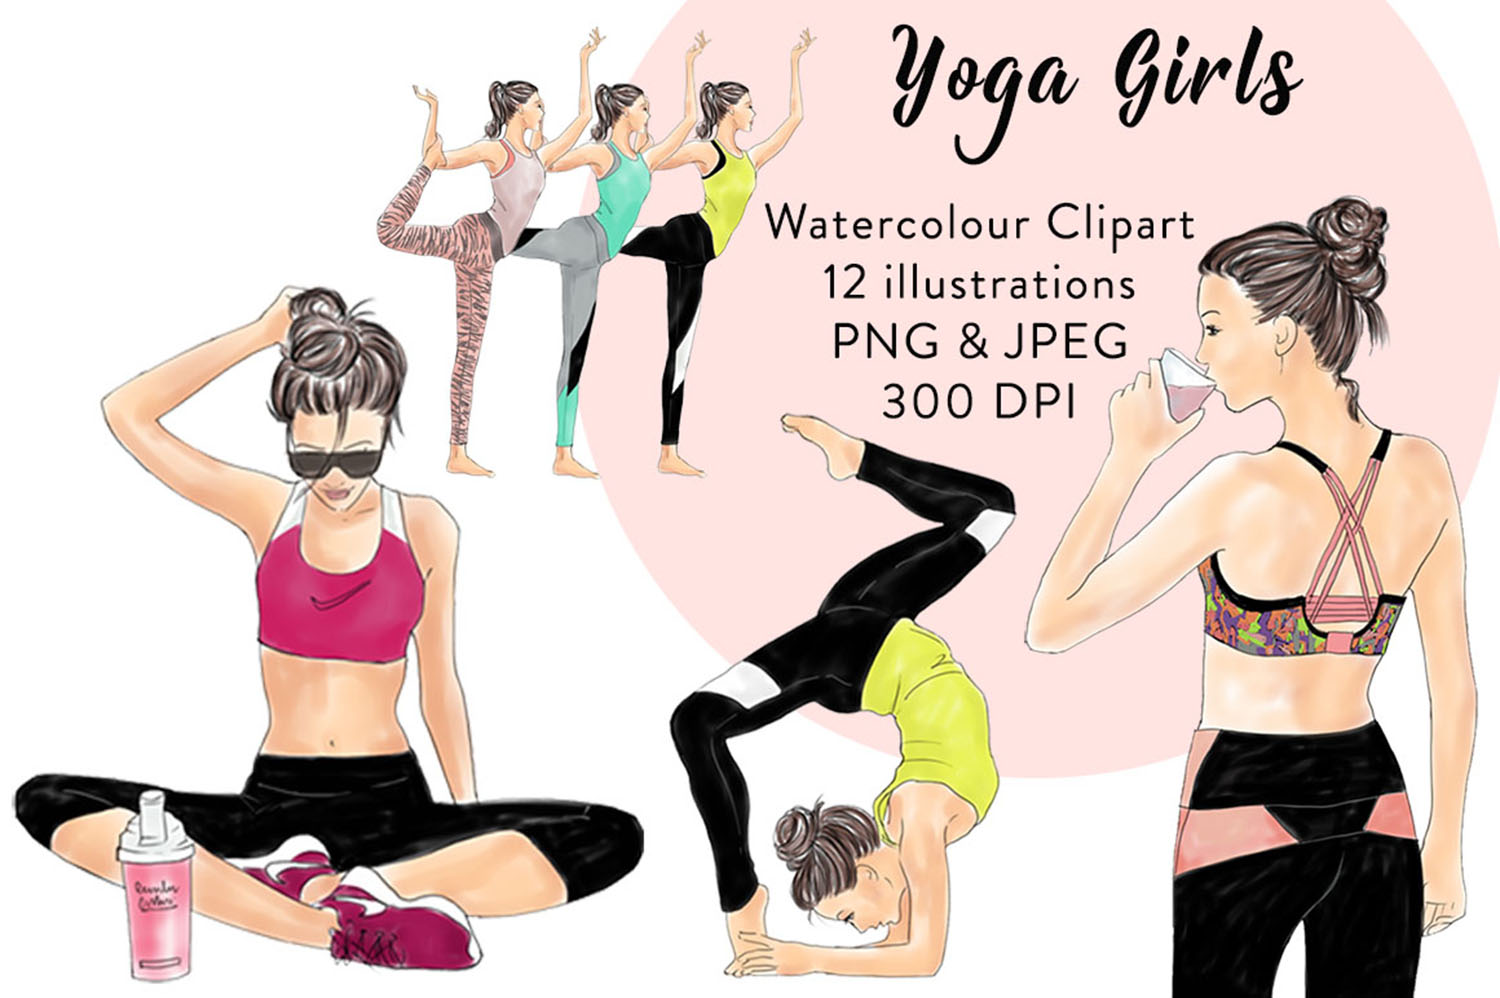 Yoga girls watercolour illustrated clipart example image 1